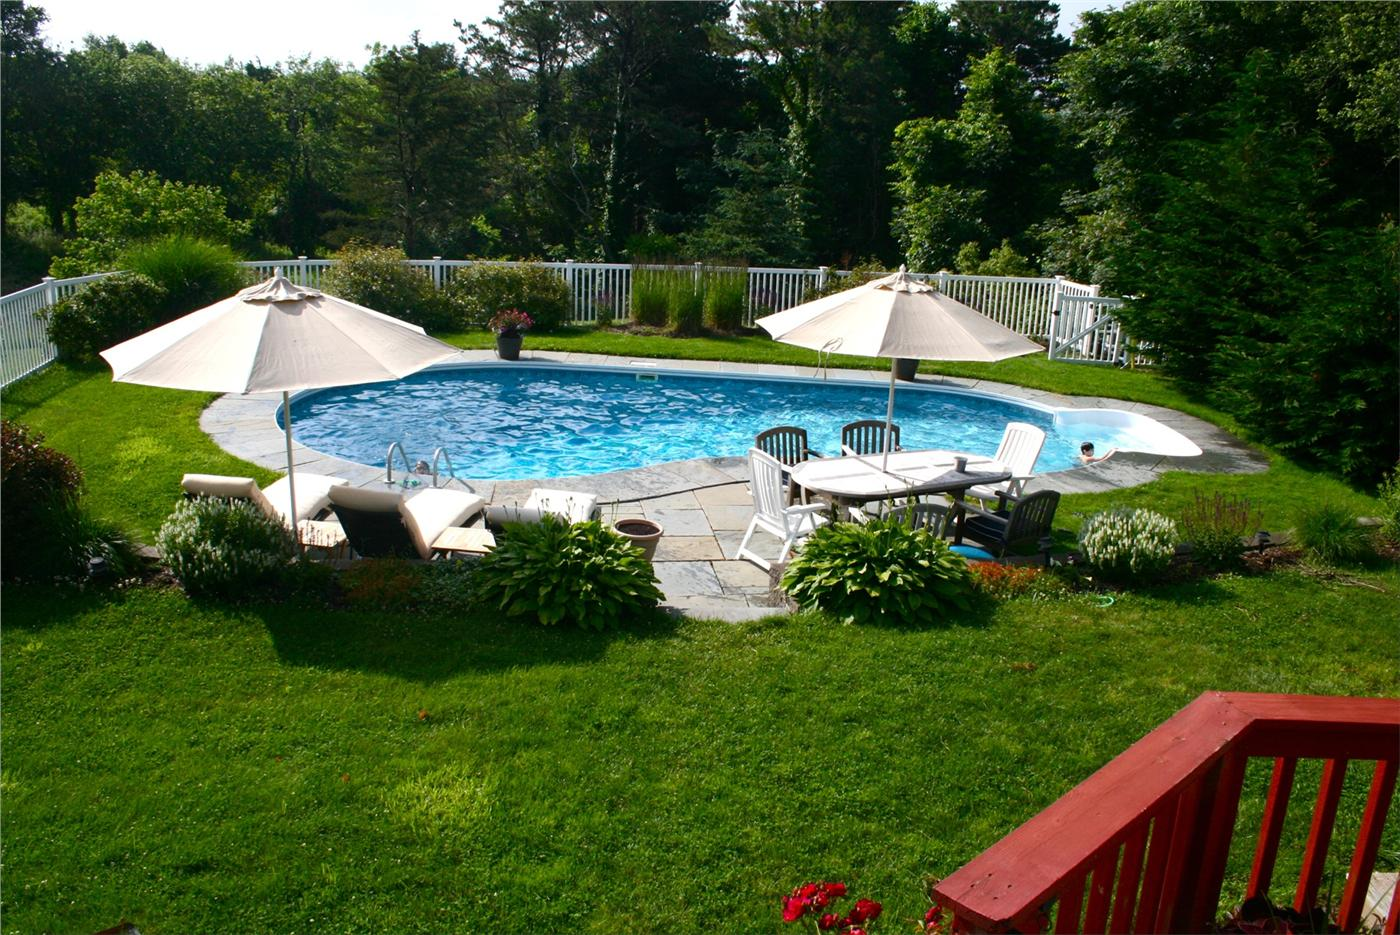 Orleans Vacation Rental Home In Cape Cod Ma 02653 Id 16042